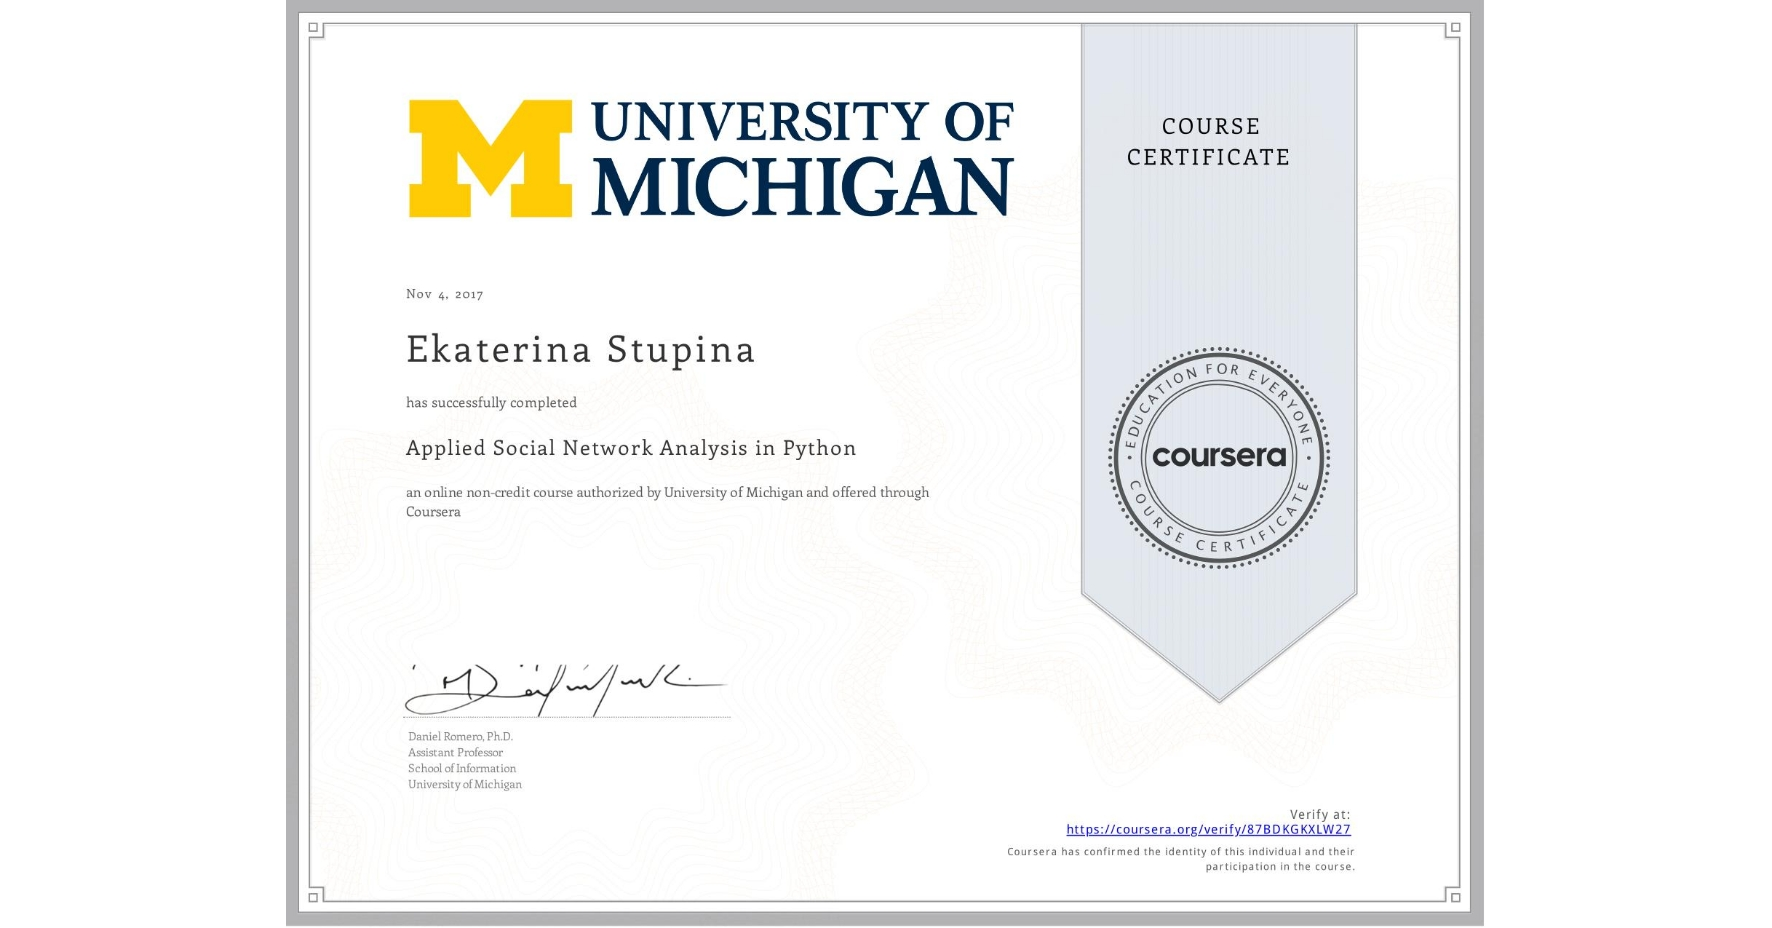 View certificate for Ekaterina Stupina, Applied Social Network Analysis in Python, an online non-credit course authorized by University of Michigan and offered through Coursera